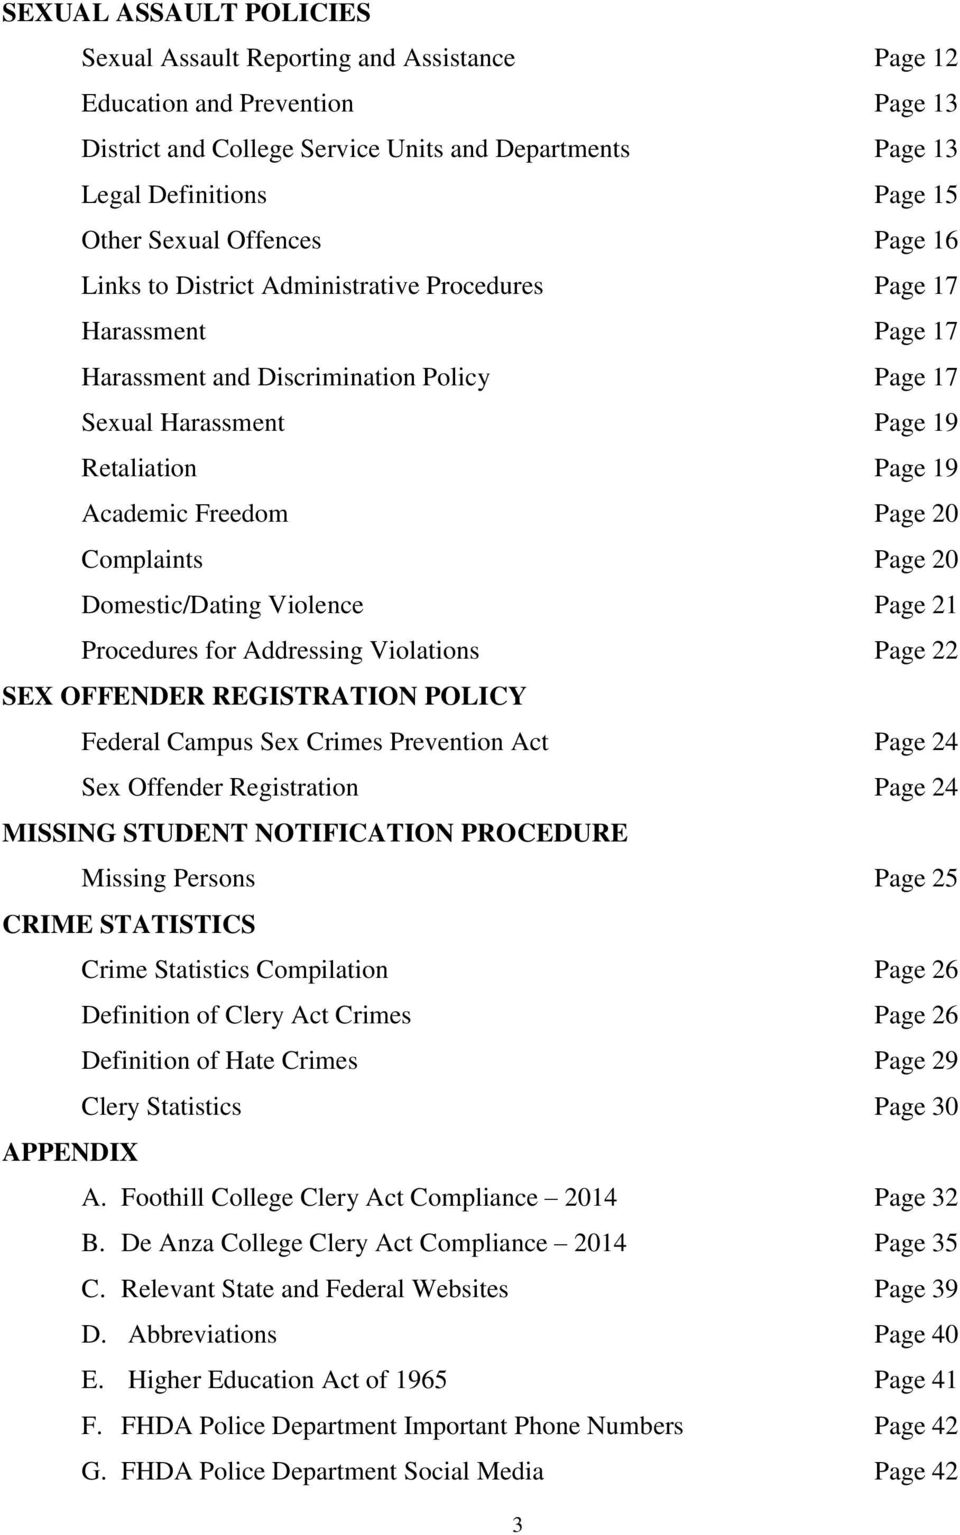 Freedom Page 20 Complaints Page 20 Domestic/Dating Violence Page 21 Procedures for Addressing Violations Page 22 SEX OFFENDER REGISTRATION POLICY Federal Campus Sex Crimes Prevention Act Page 24 Sex